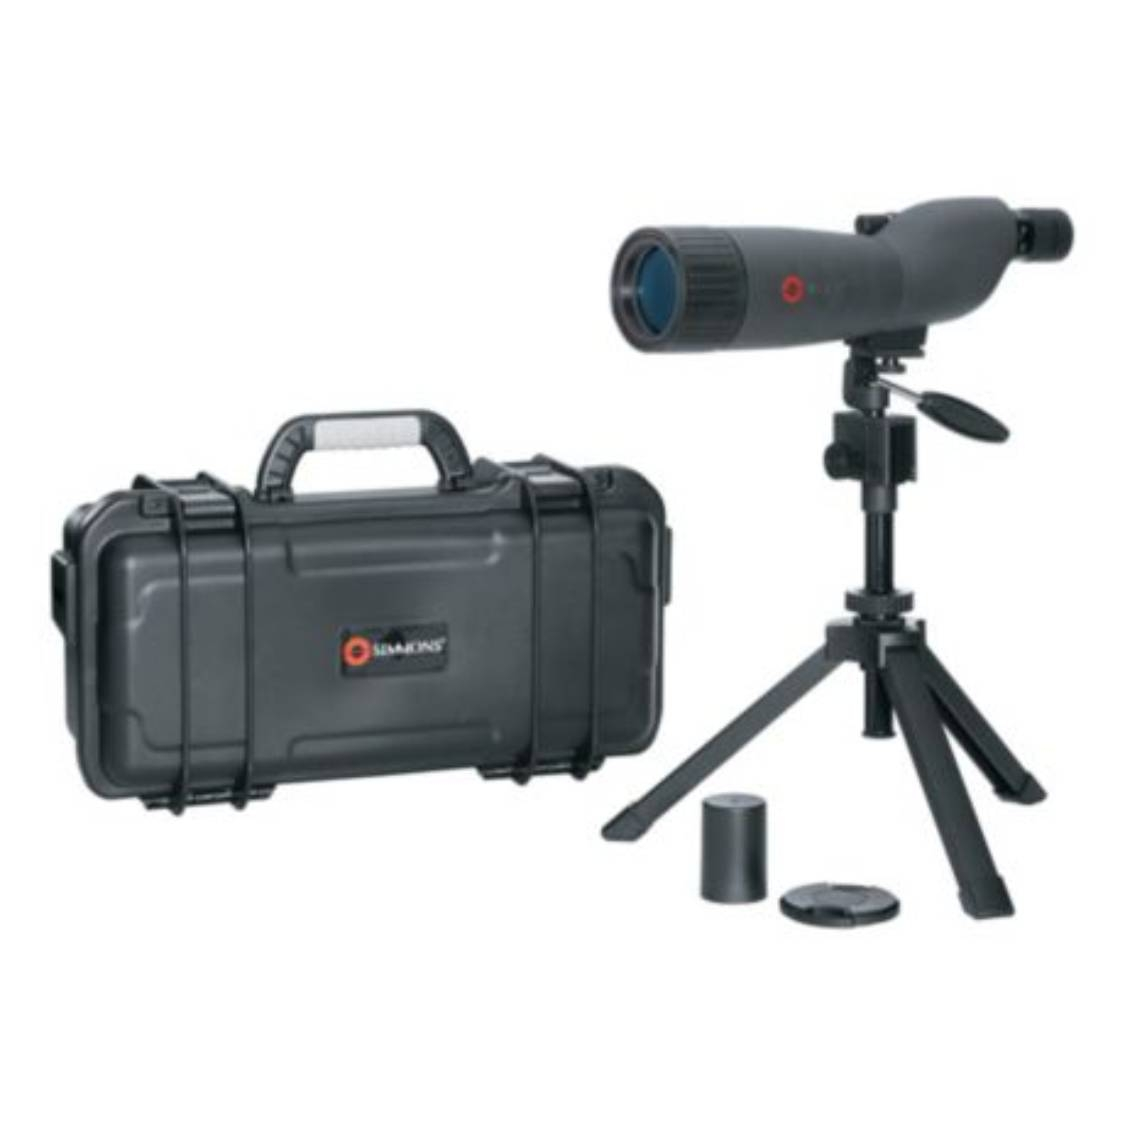 Simmons 20-60X80 Prosport Spotting Scope